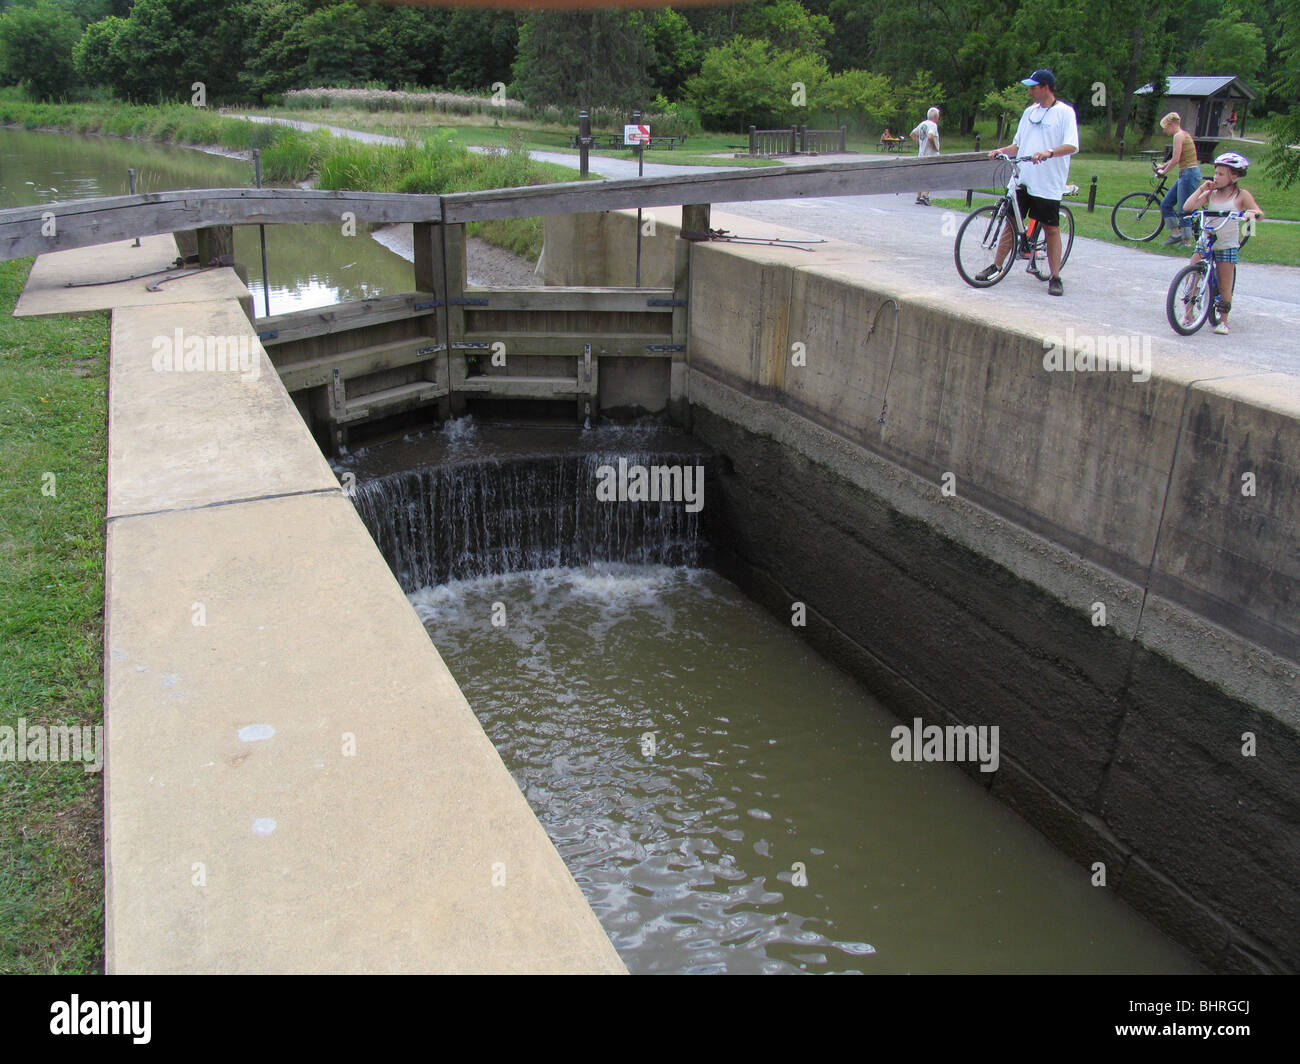 Canal lock Ohio and Erie Canal Towpath Trail bikers Cuyahoga Valley National Park Ohio - Stock Image